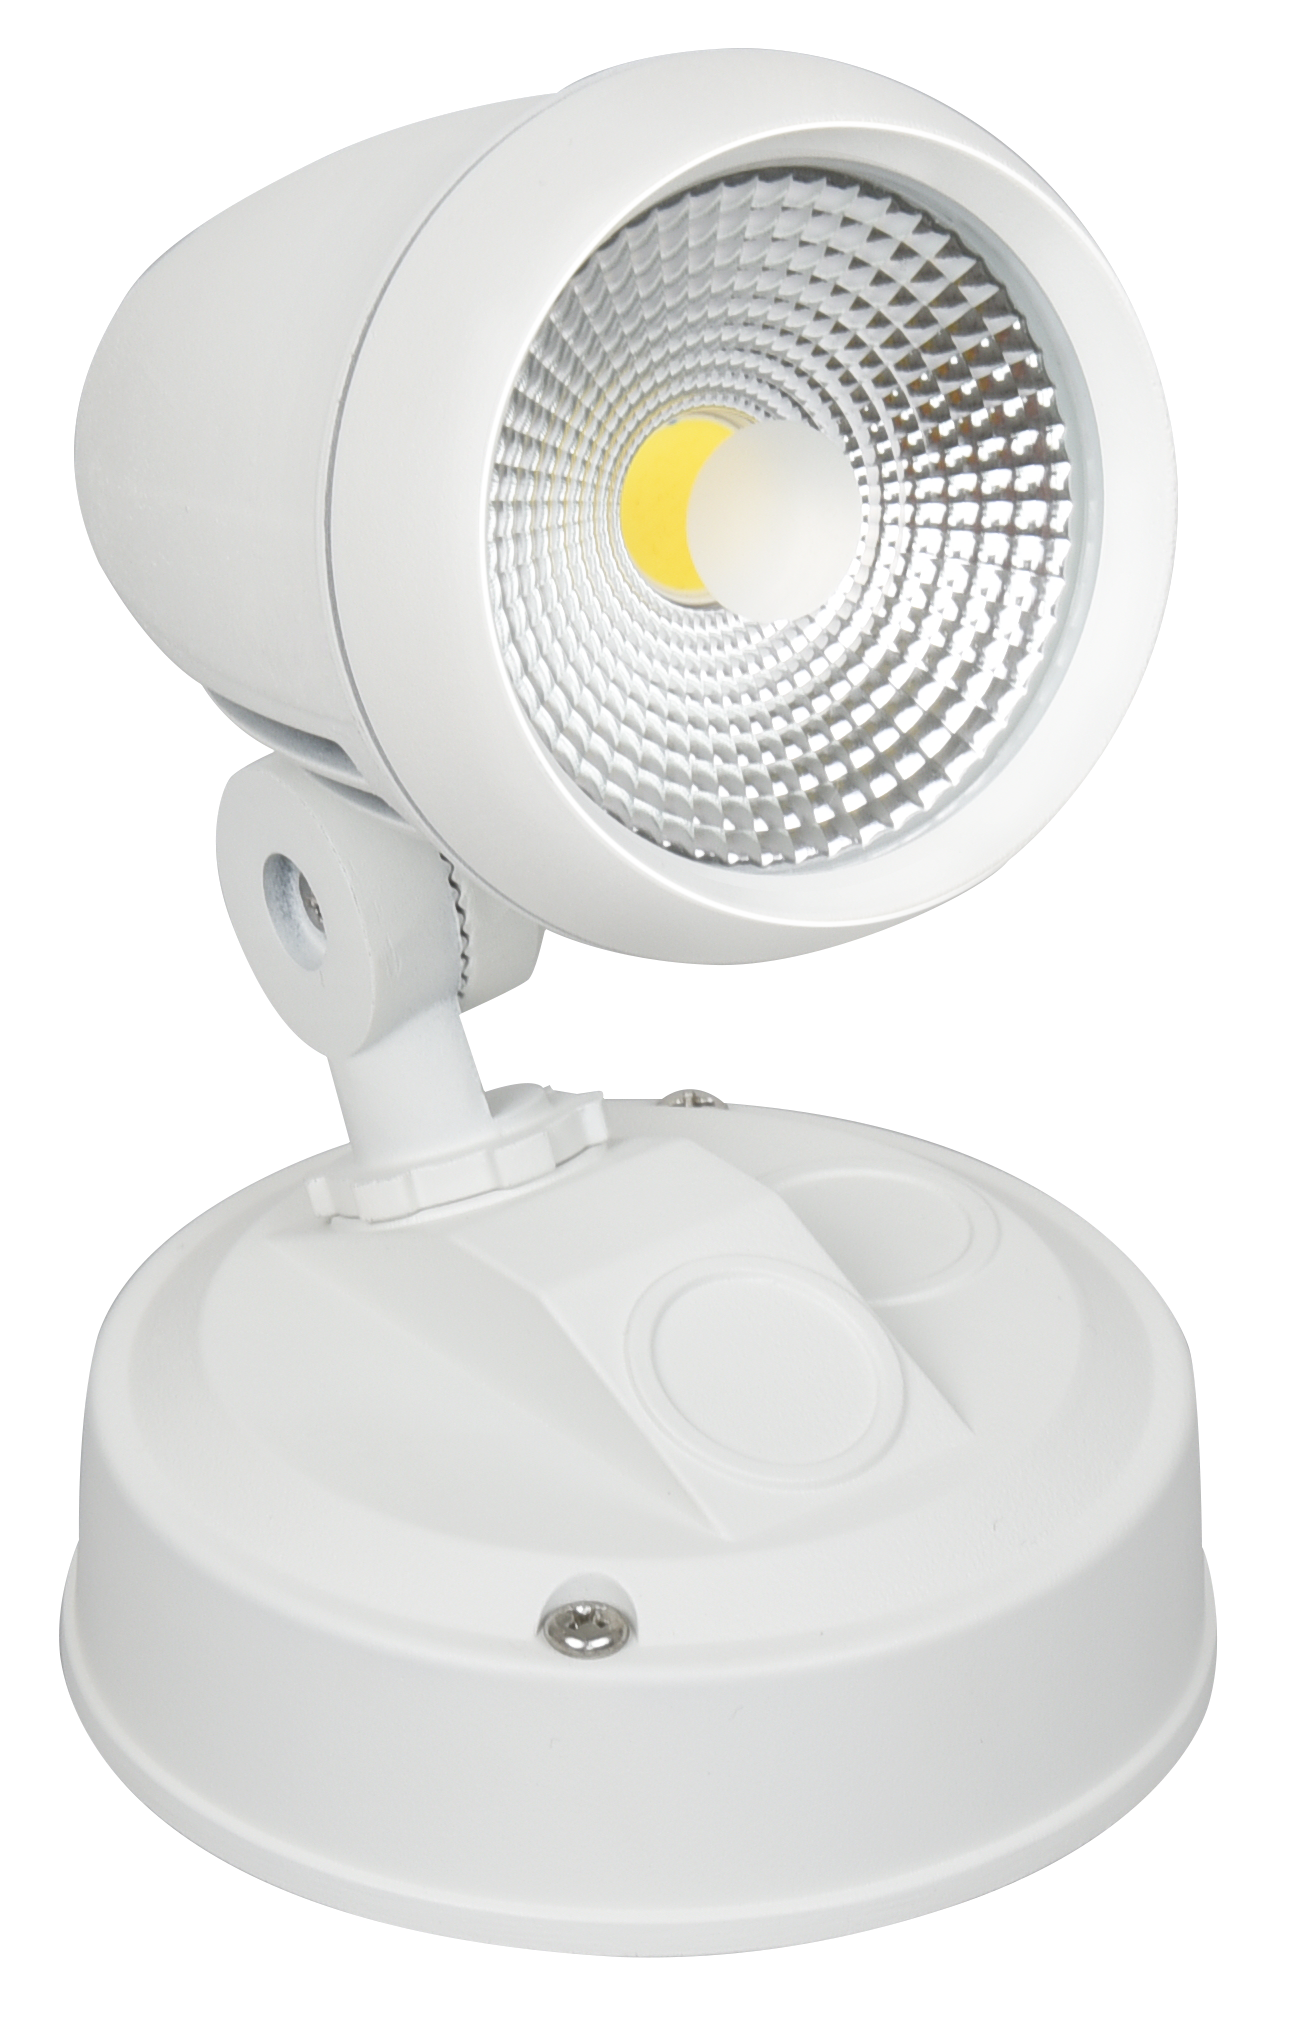 Seculite Spotlight (White, IP54)